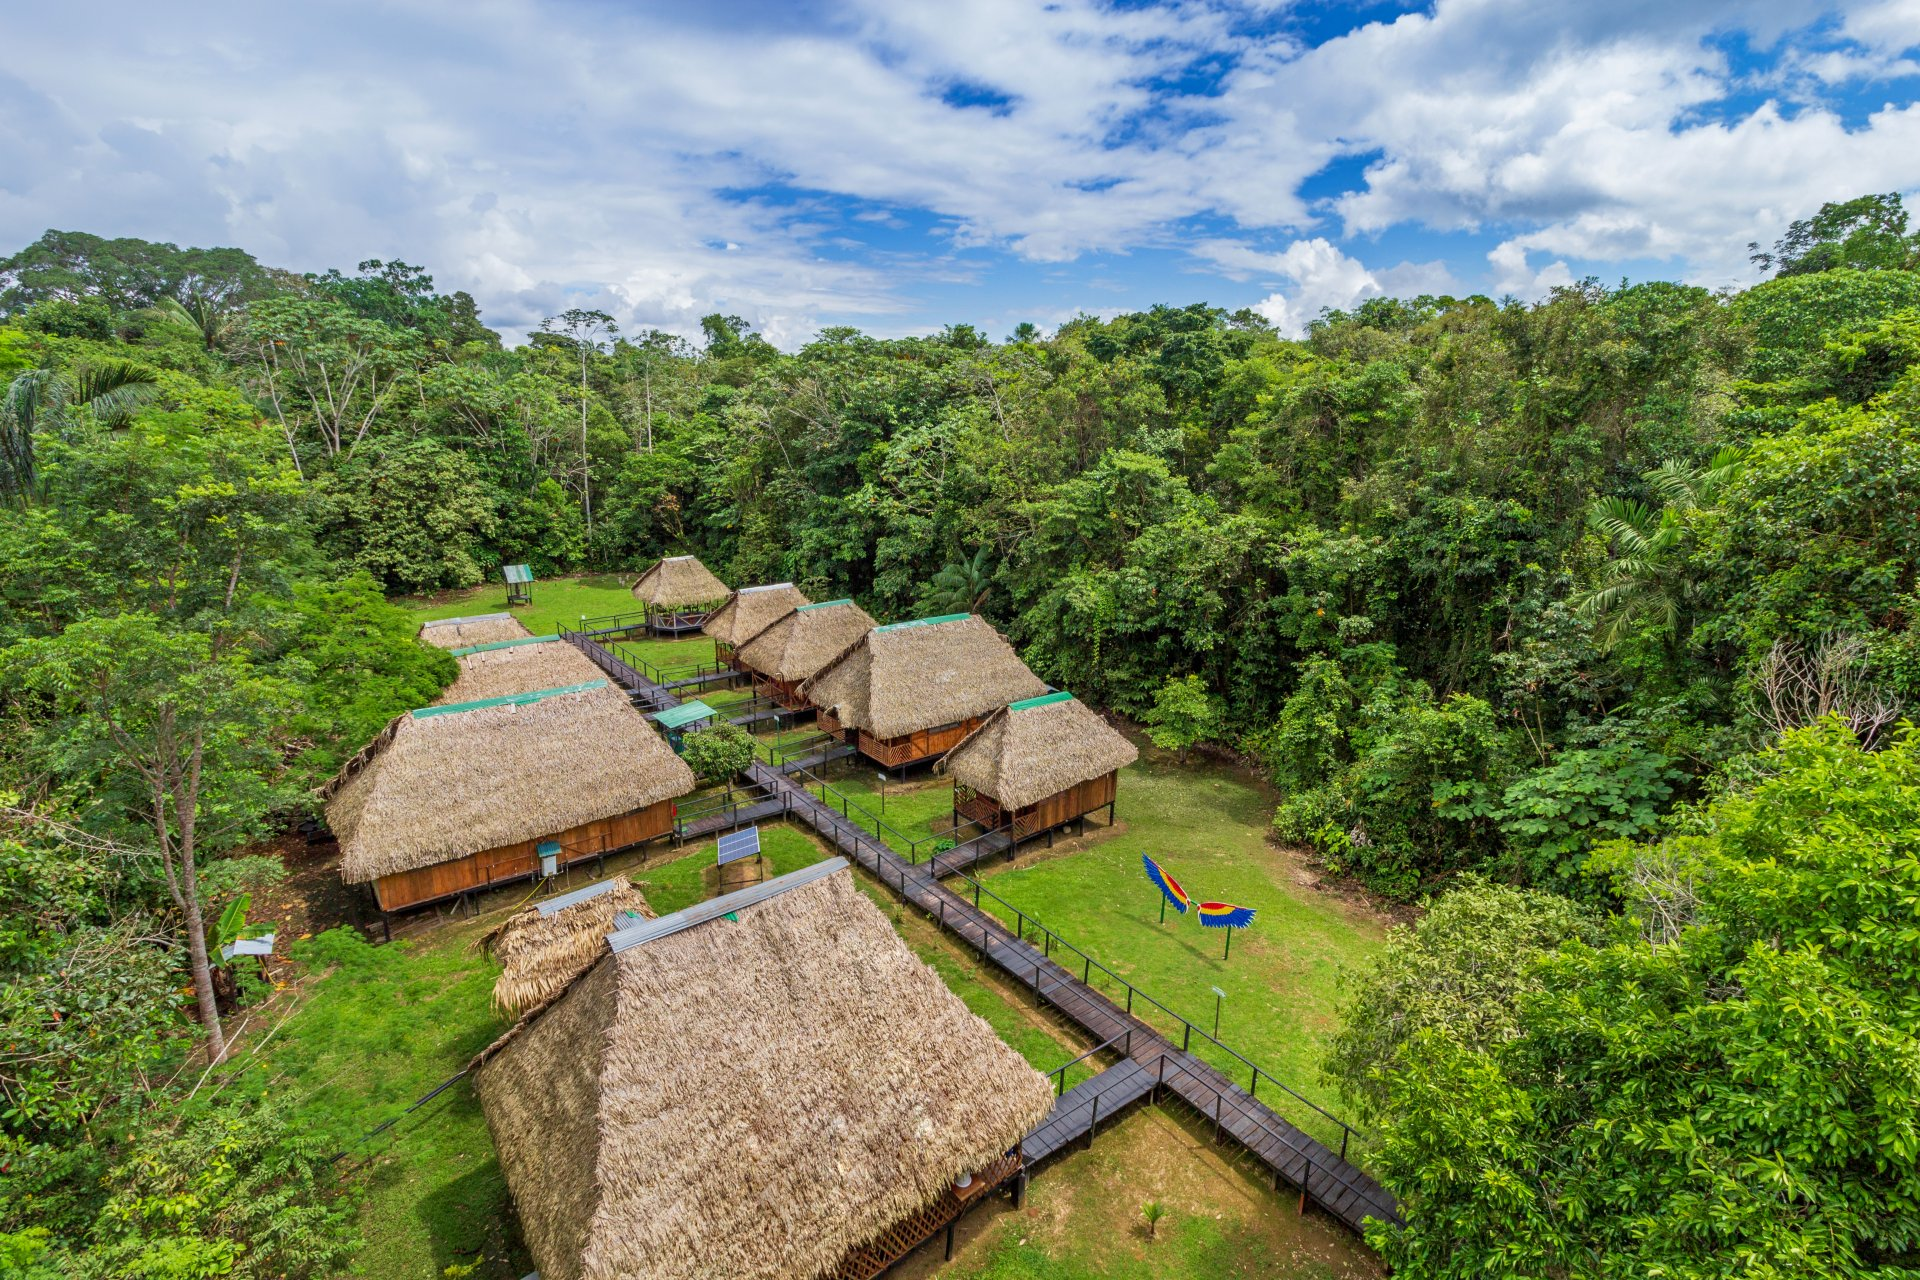 Why choose Green Forest Ecolodge as the best ?